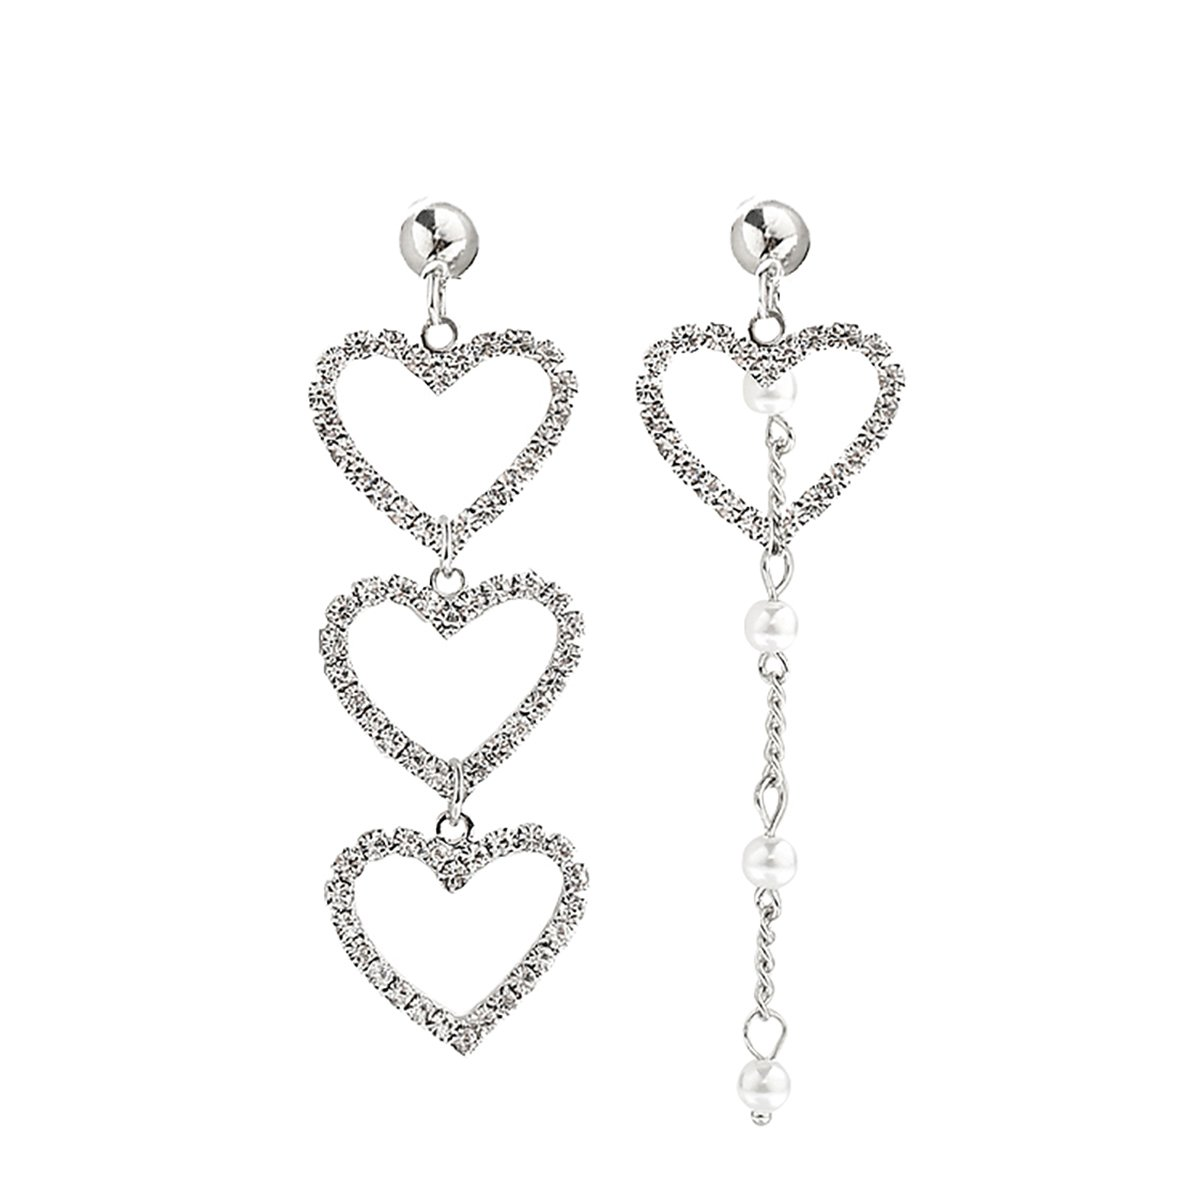 FVERMECKY Heart Asymmetrical Dangle Stud Earrings Made with Crystals for Women for Girls(Silver Color)